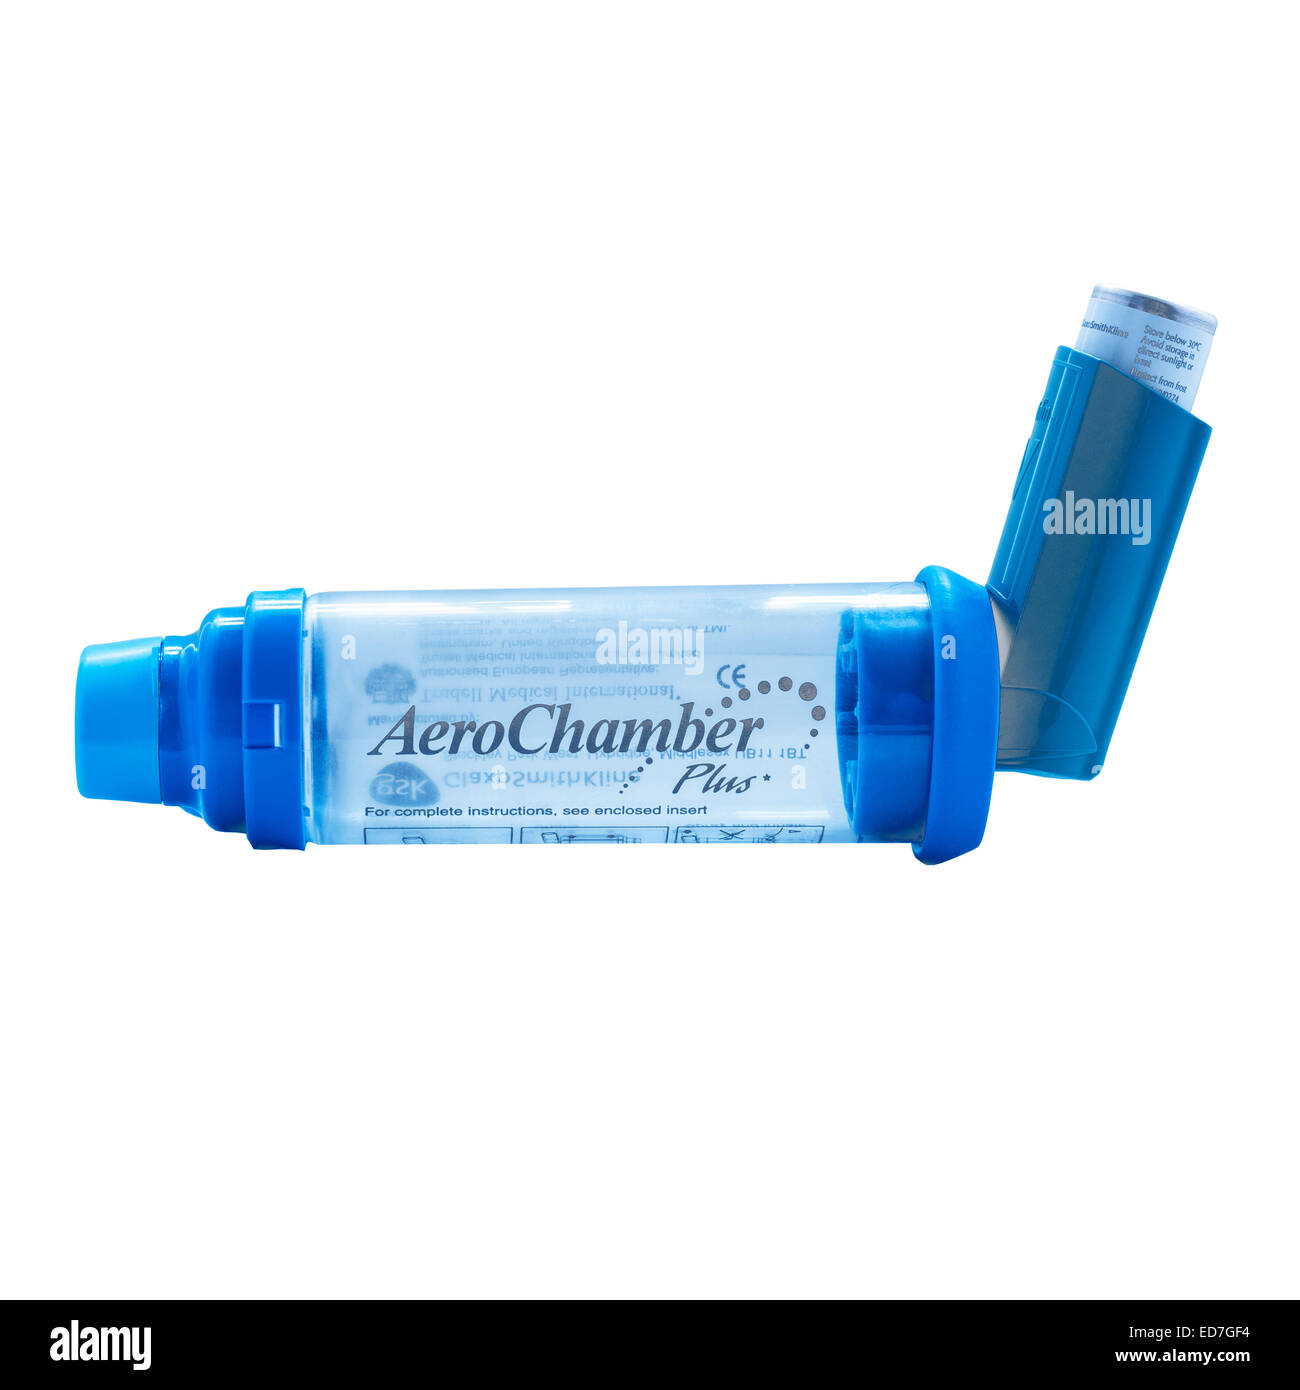 A Aero Chamber plus spacer for an asthma inhaler making it easier to inhale on a white background - Stock Image